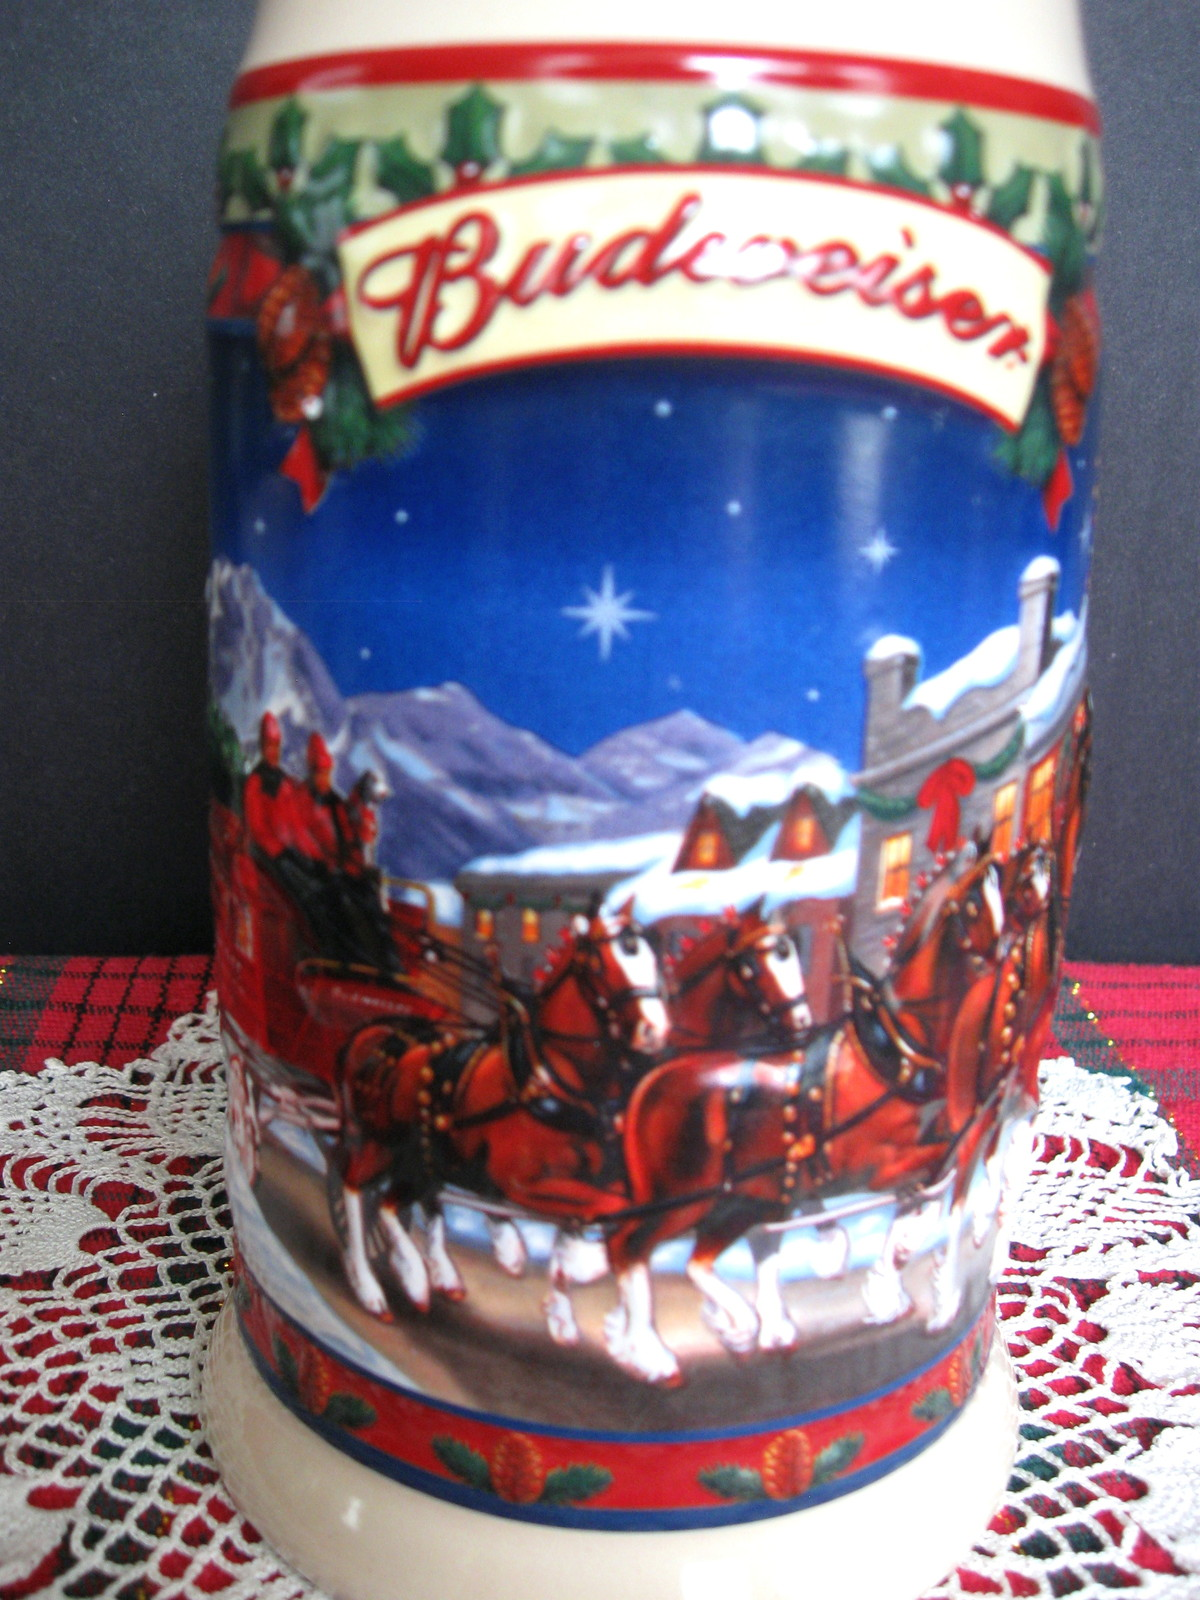 2003 Budweiser Holiday Stein - Old Towne Holiday - No. CS560 - No Box image 6